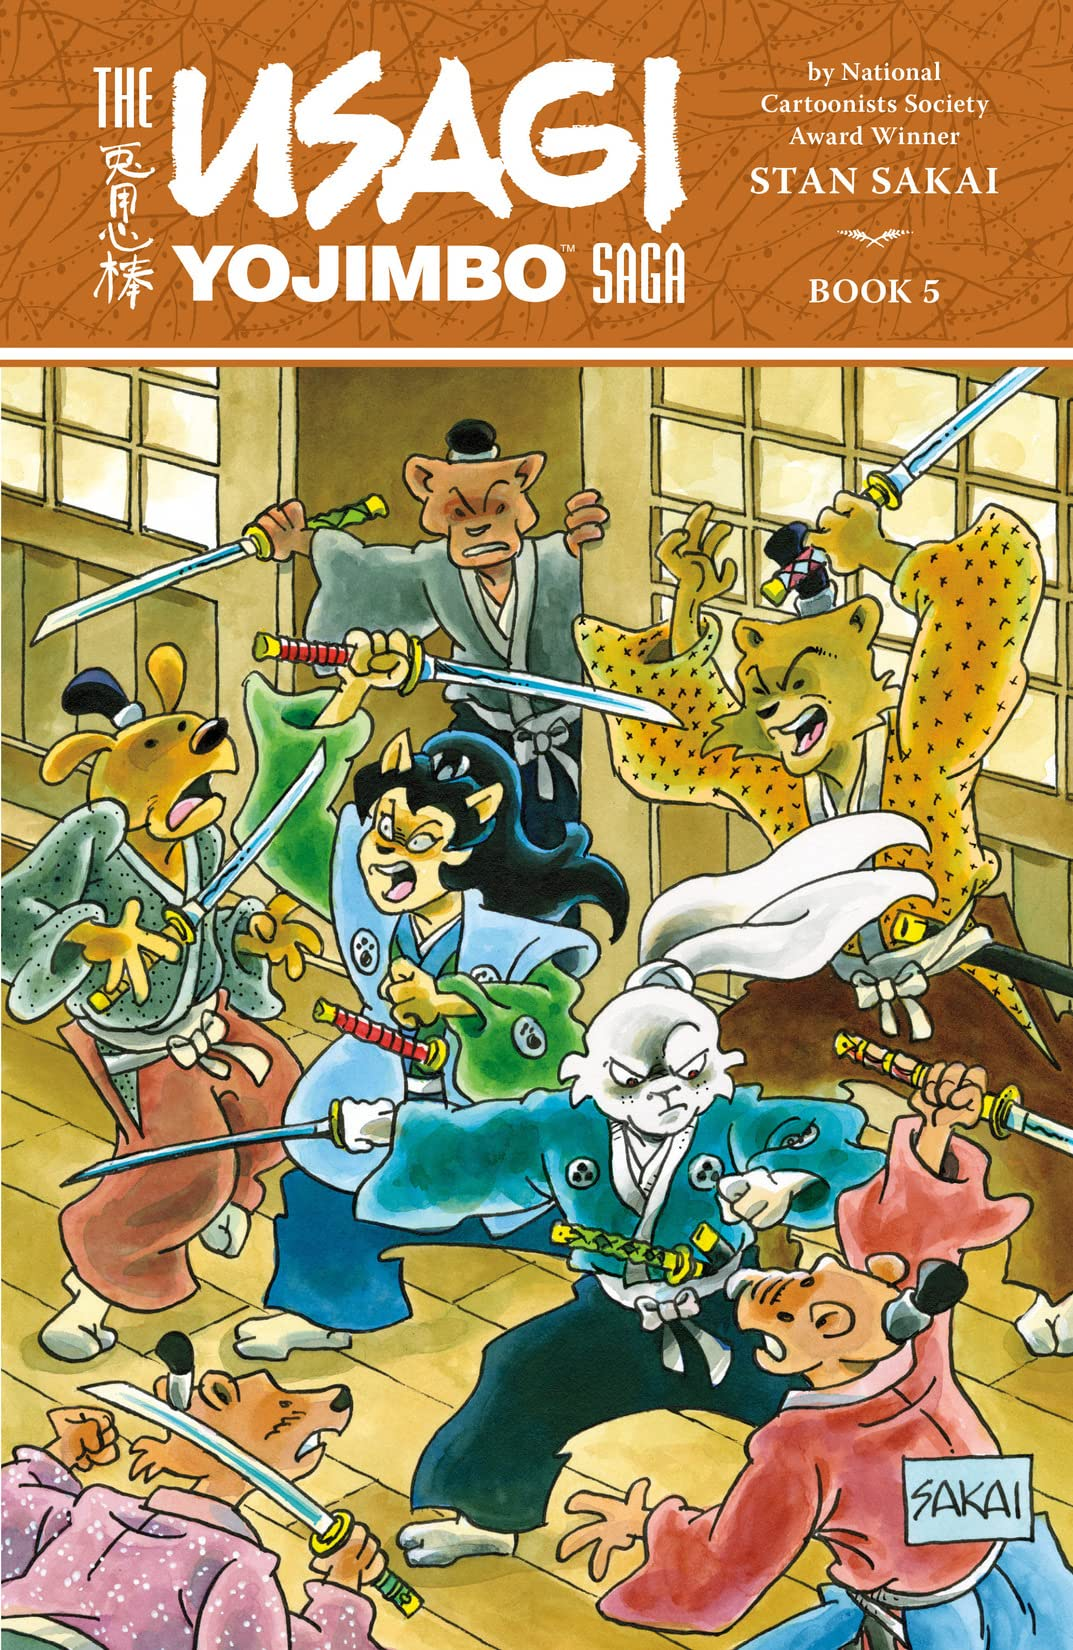 Usagi Yojimbo Saga Vol. 5